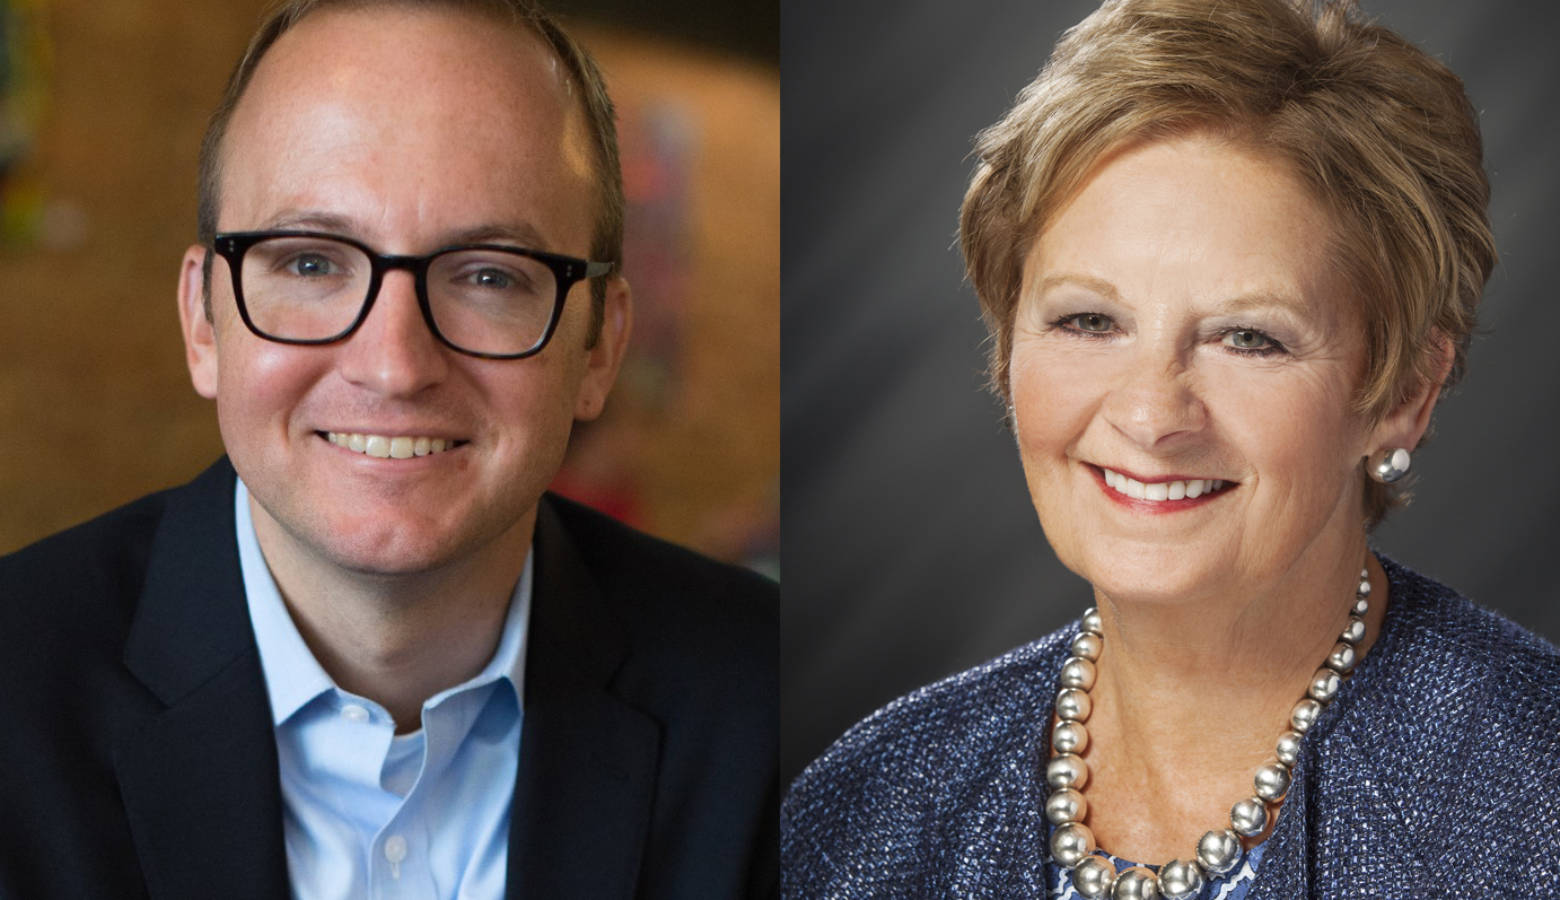 Democratic Secretary of State candidate Jim Harper, left, is running against incumbent Republican Secretary of State Connie Lawson, right. (Harper For Indiana/Indiana Secretary of State)